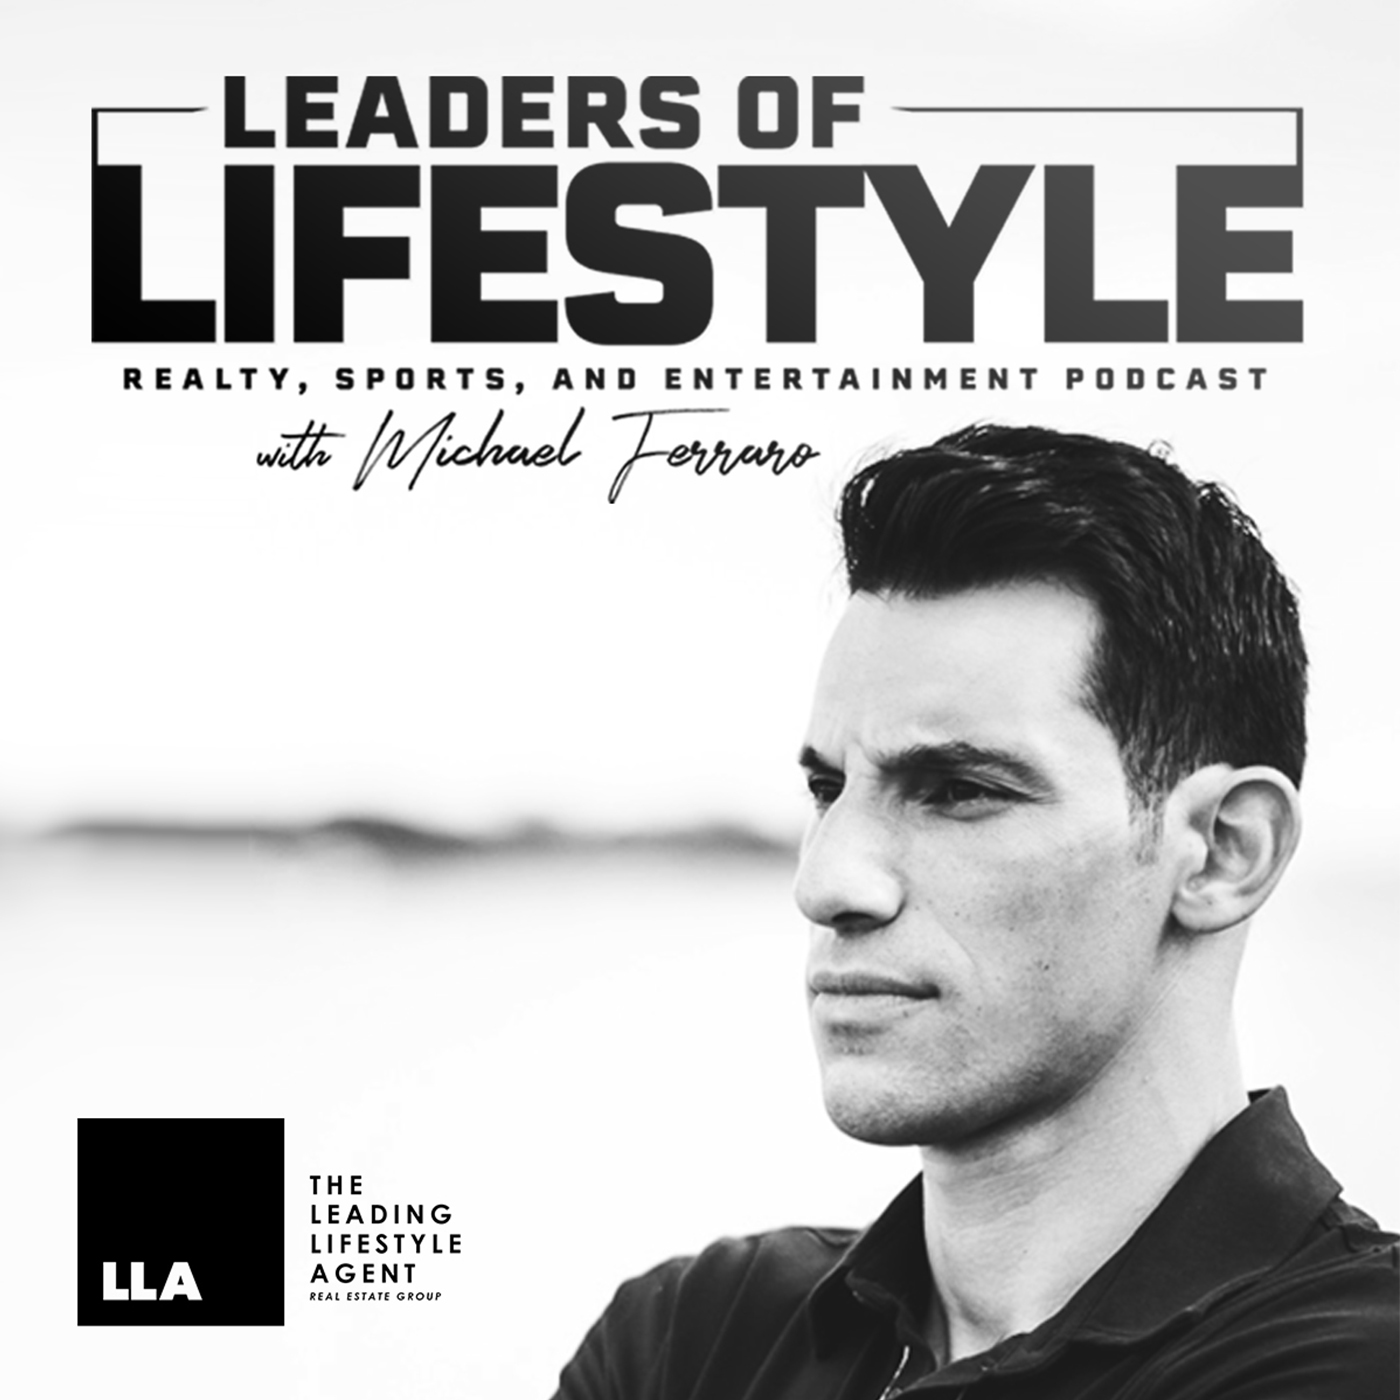 Artwork for podcast Leaders of Lifestyle